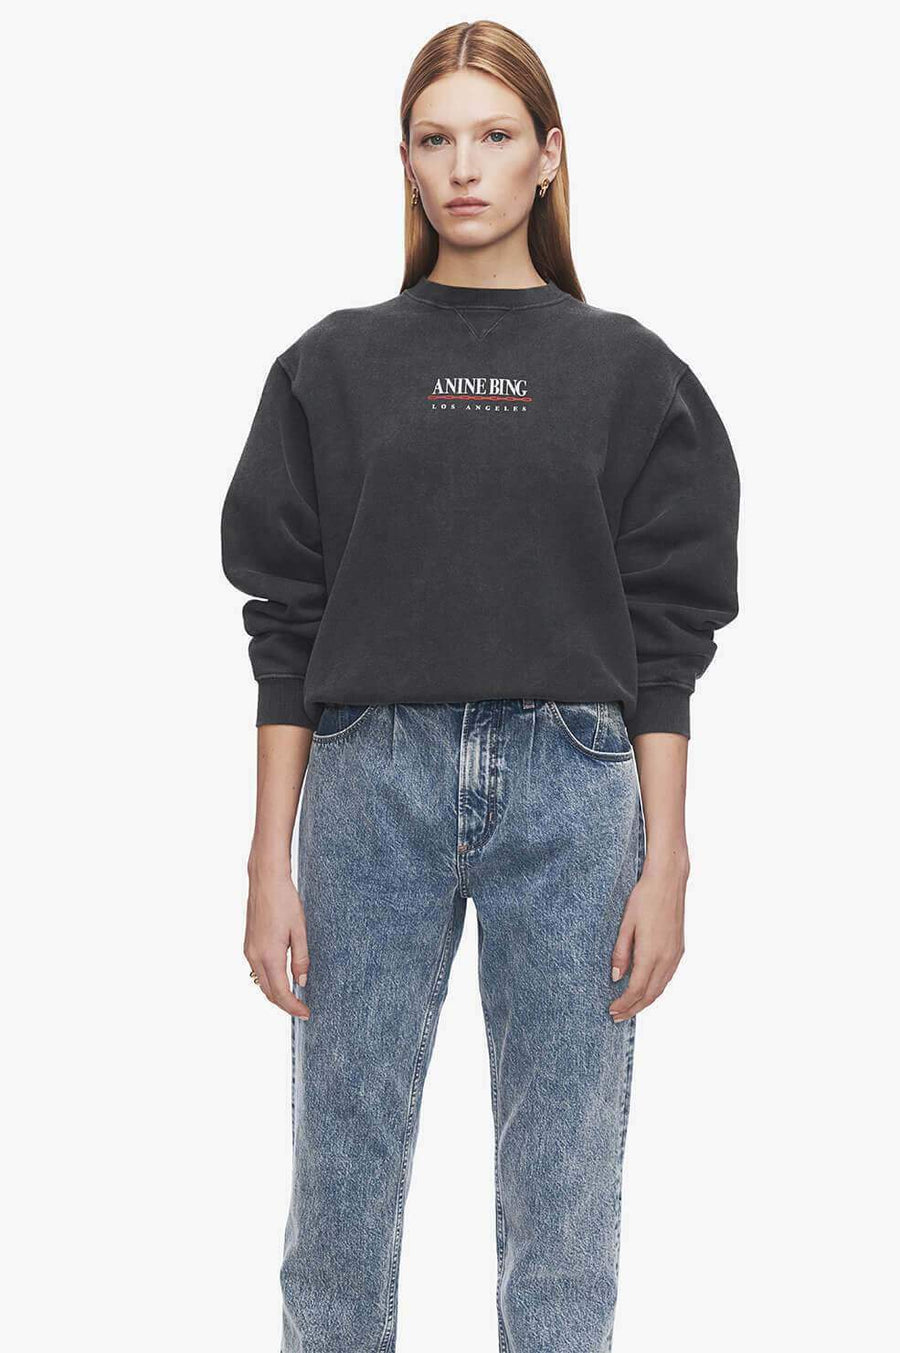 Anine Bing Oversized Ramona Sweatshirt Link in washed black from The New Trend